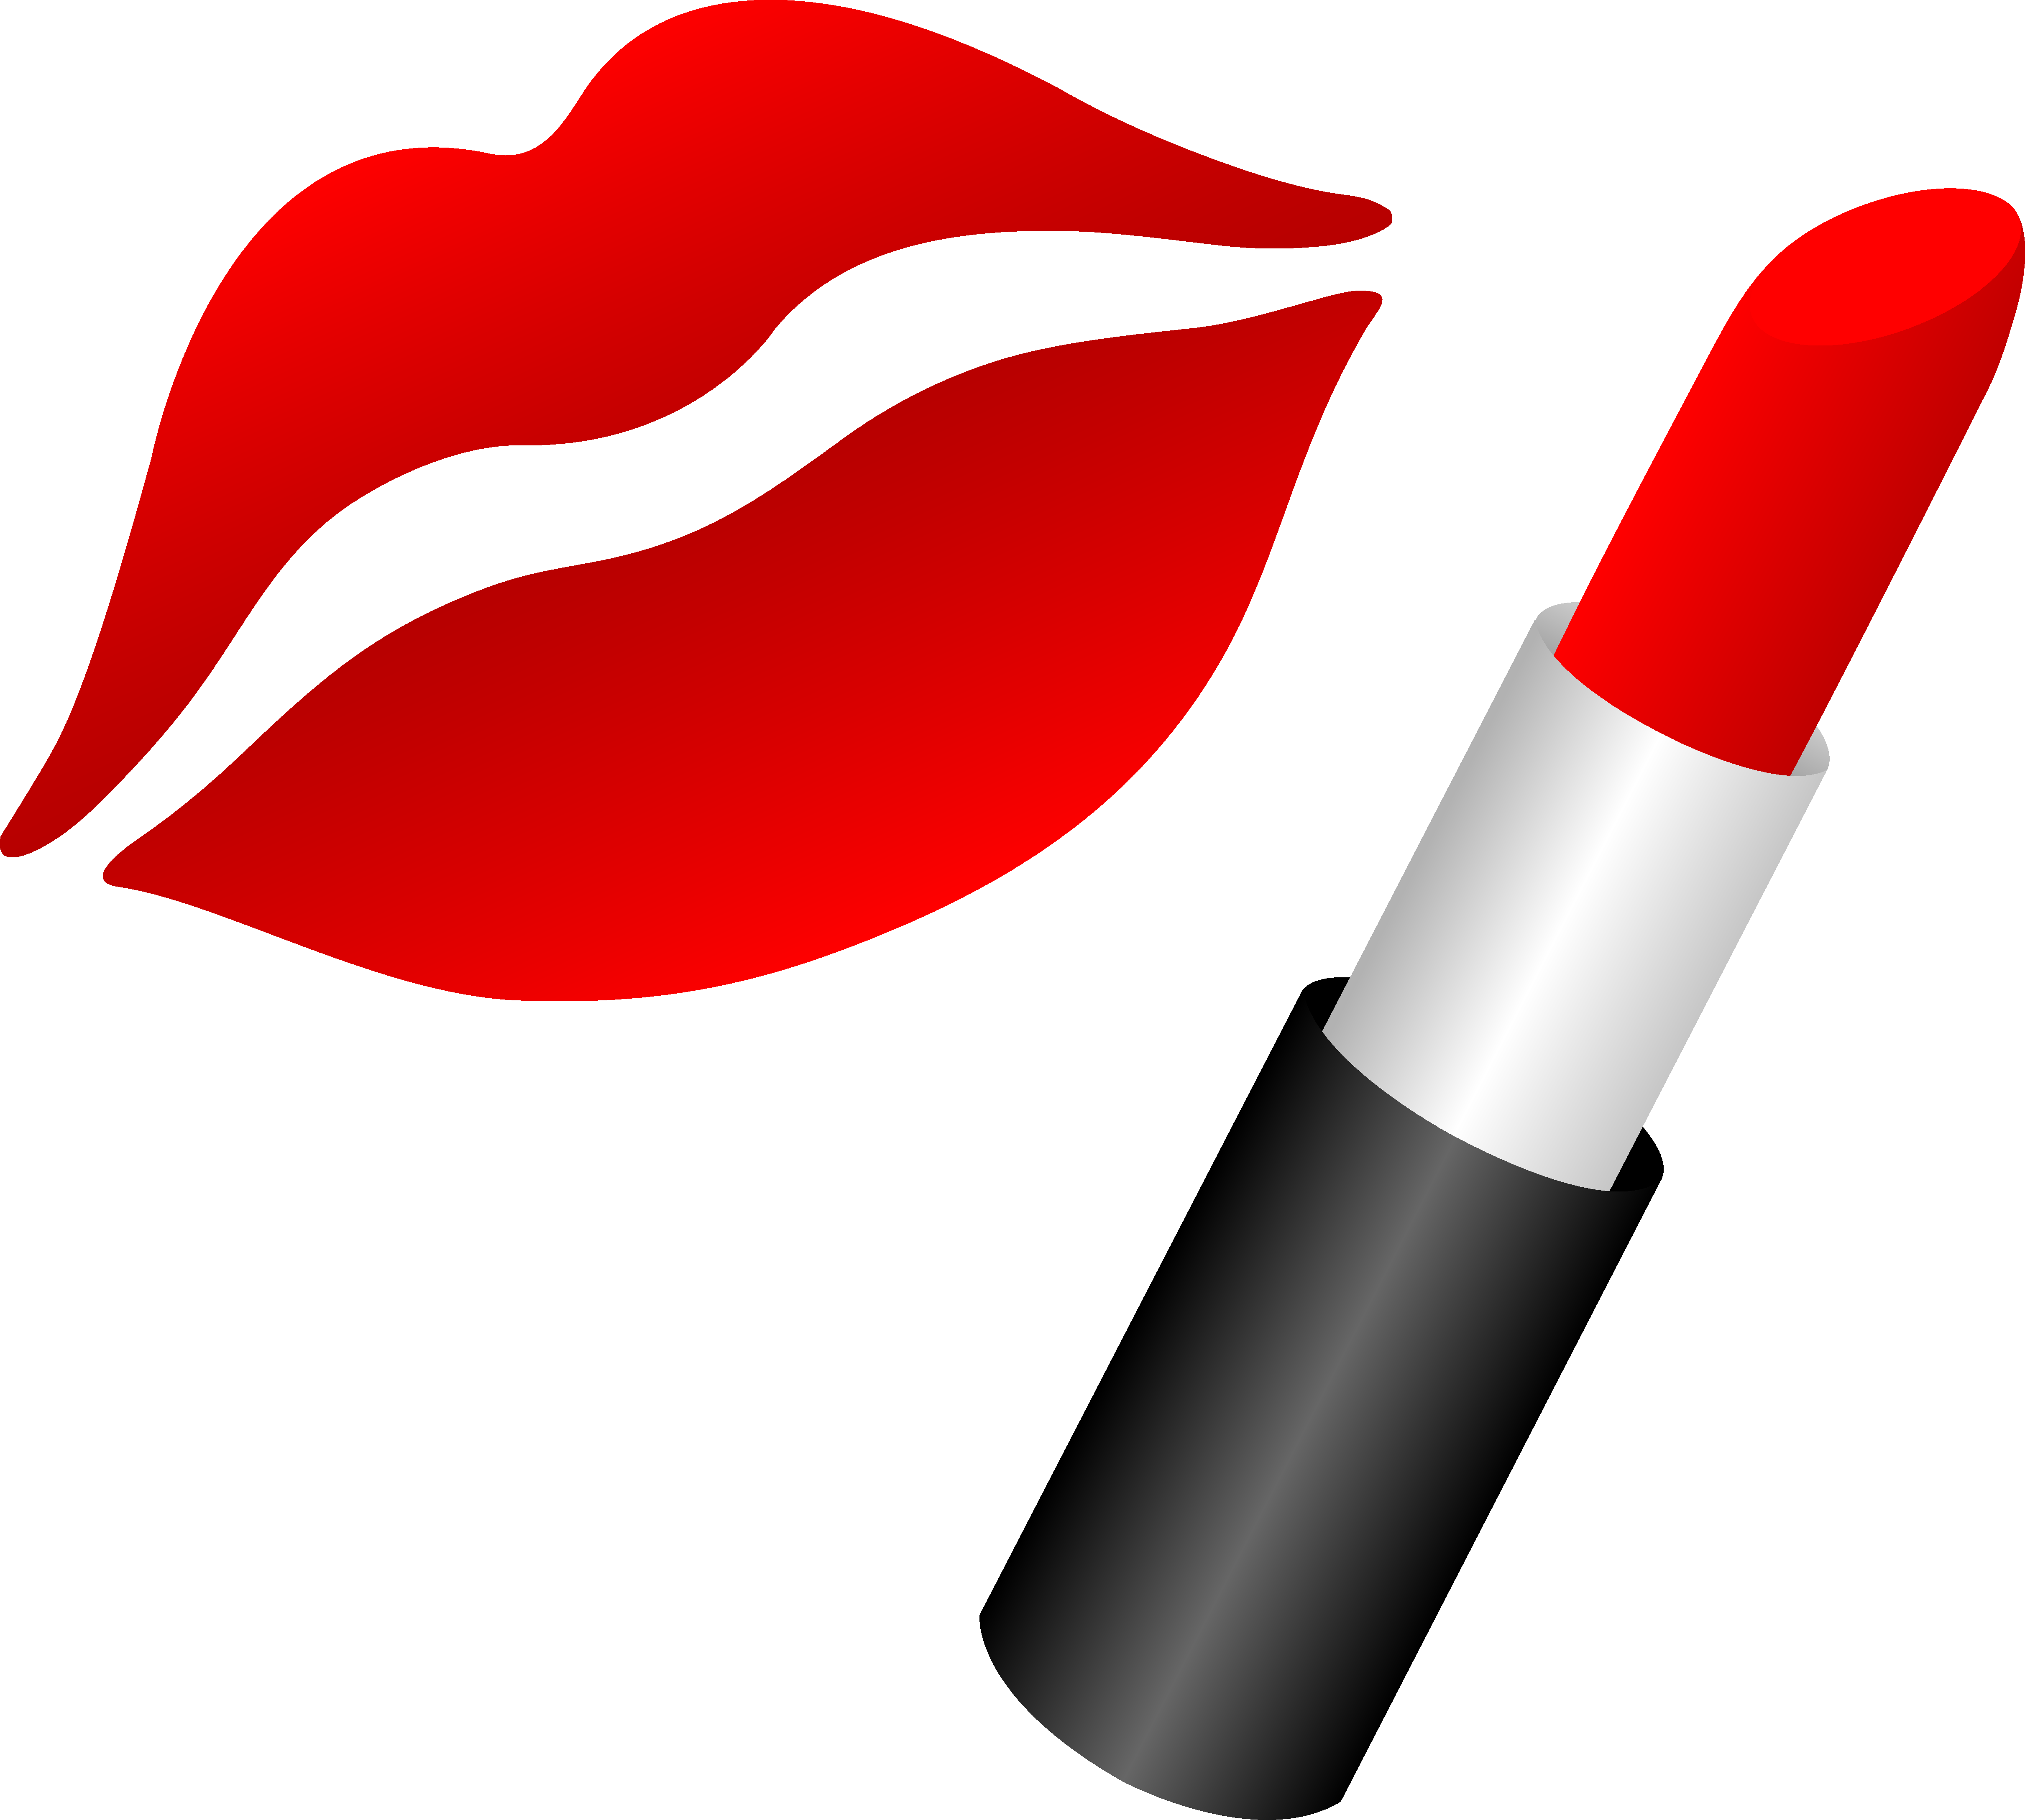 Lips With Red Lipstick - Free Clip Art